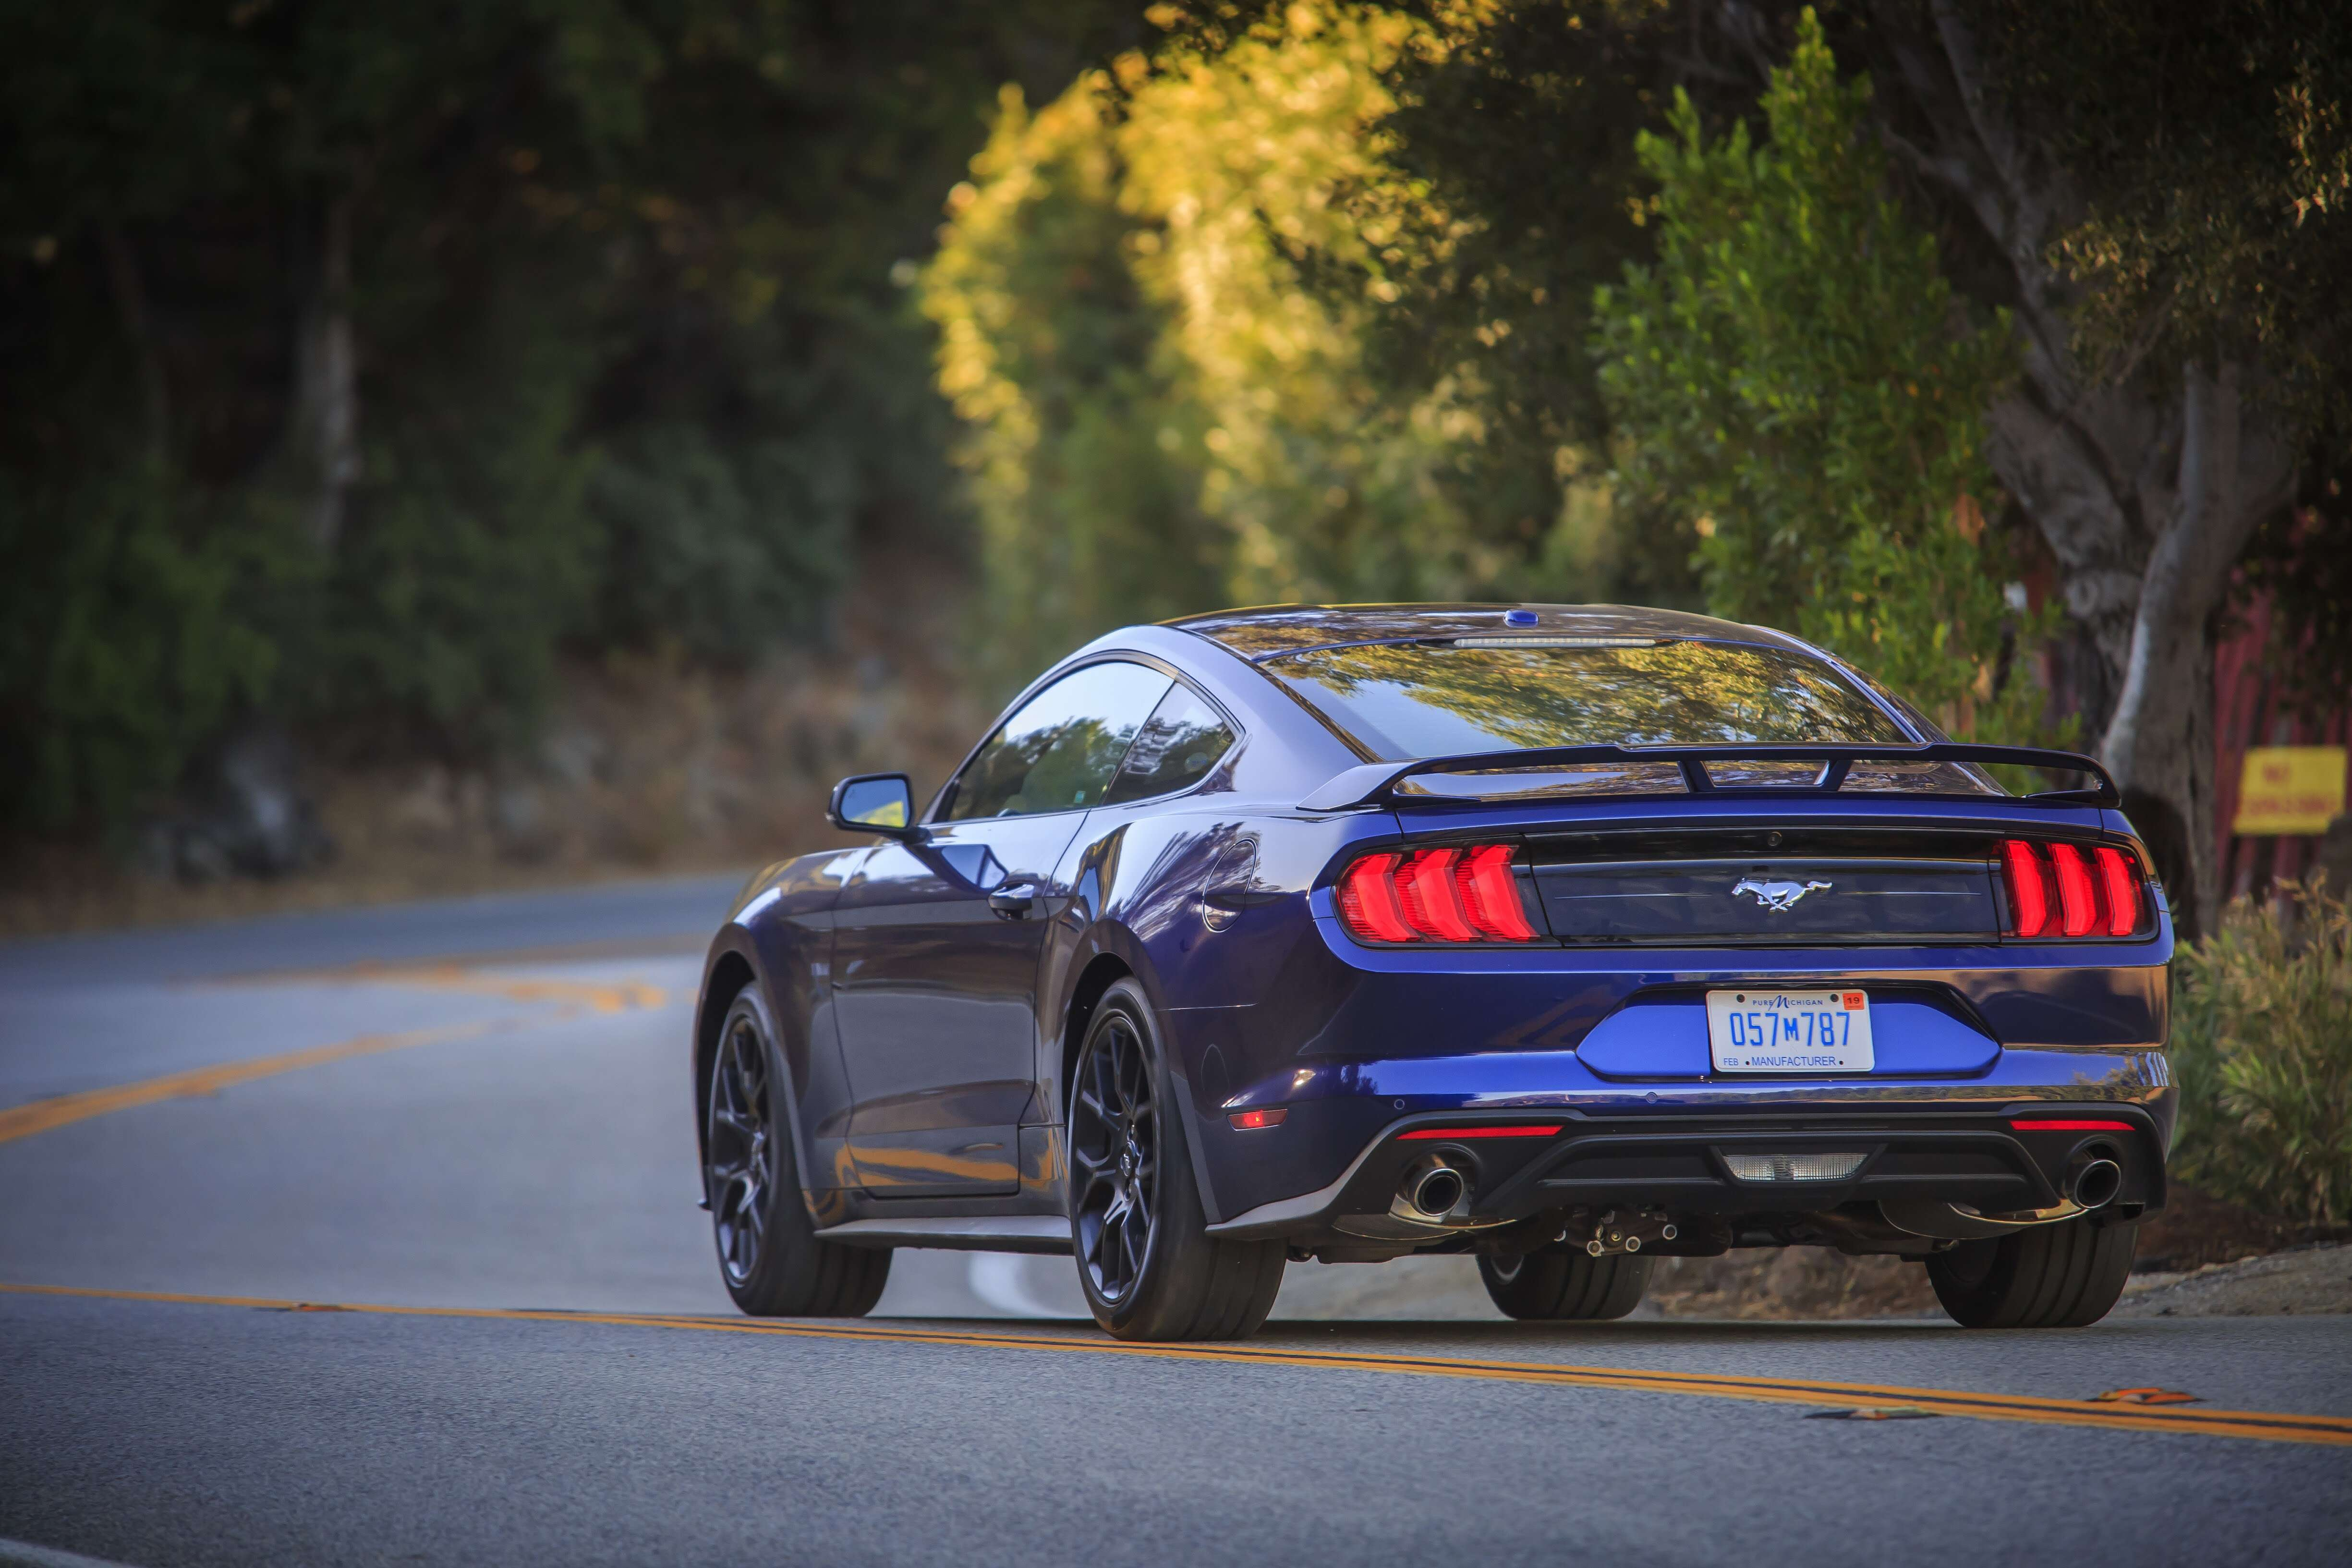 2018 Ford Mustang Review A Muscle Car To Be Thankful For The Drive 5 0 Tach Wiring